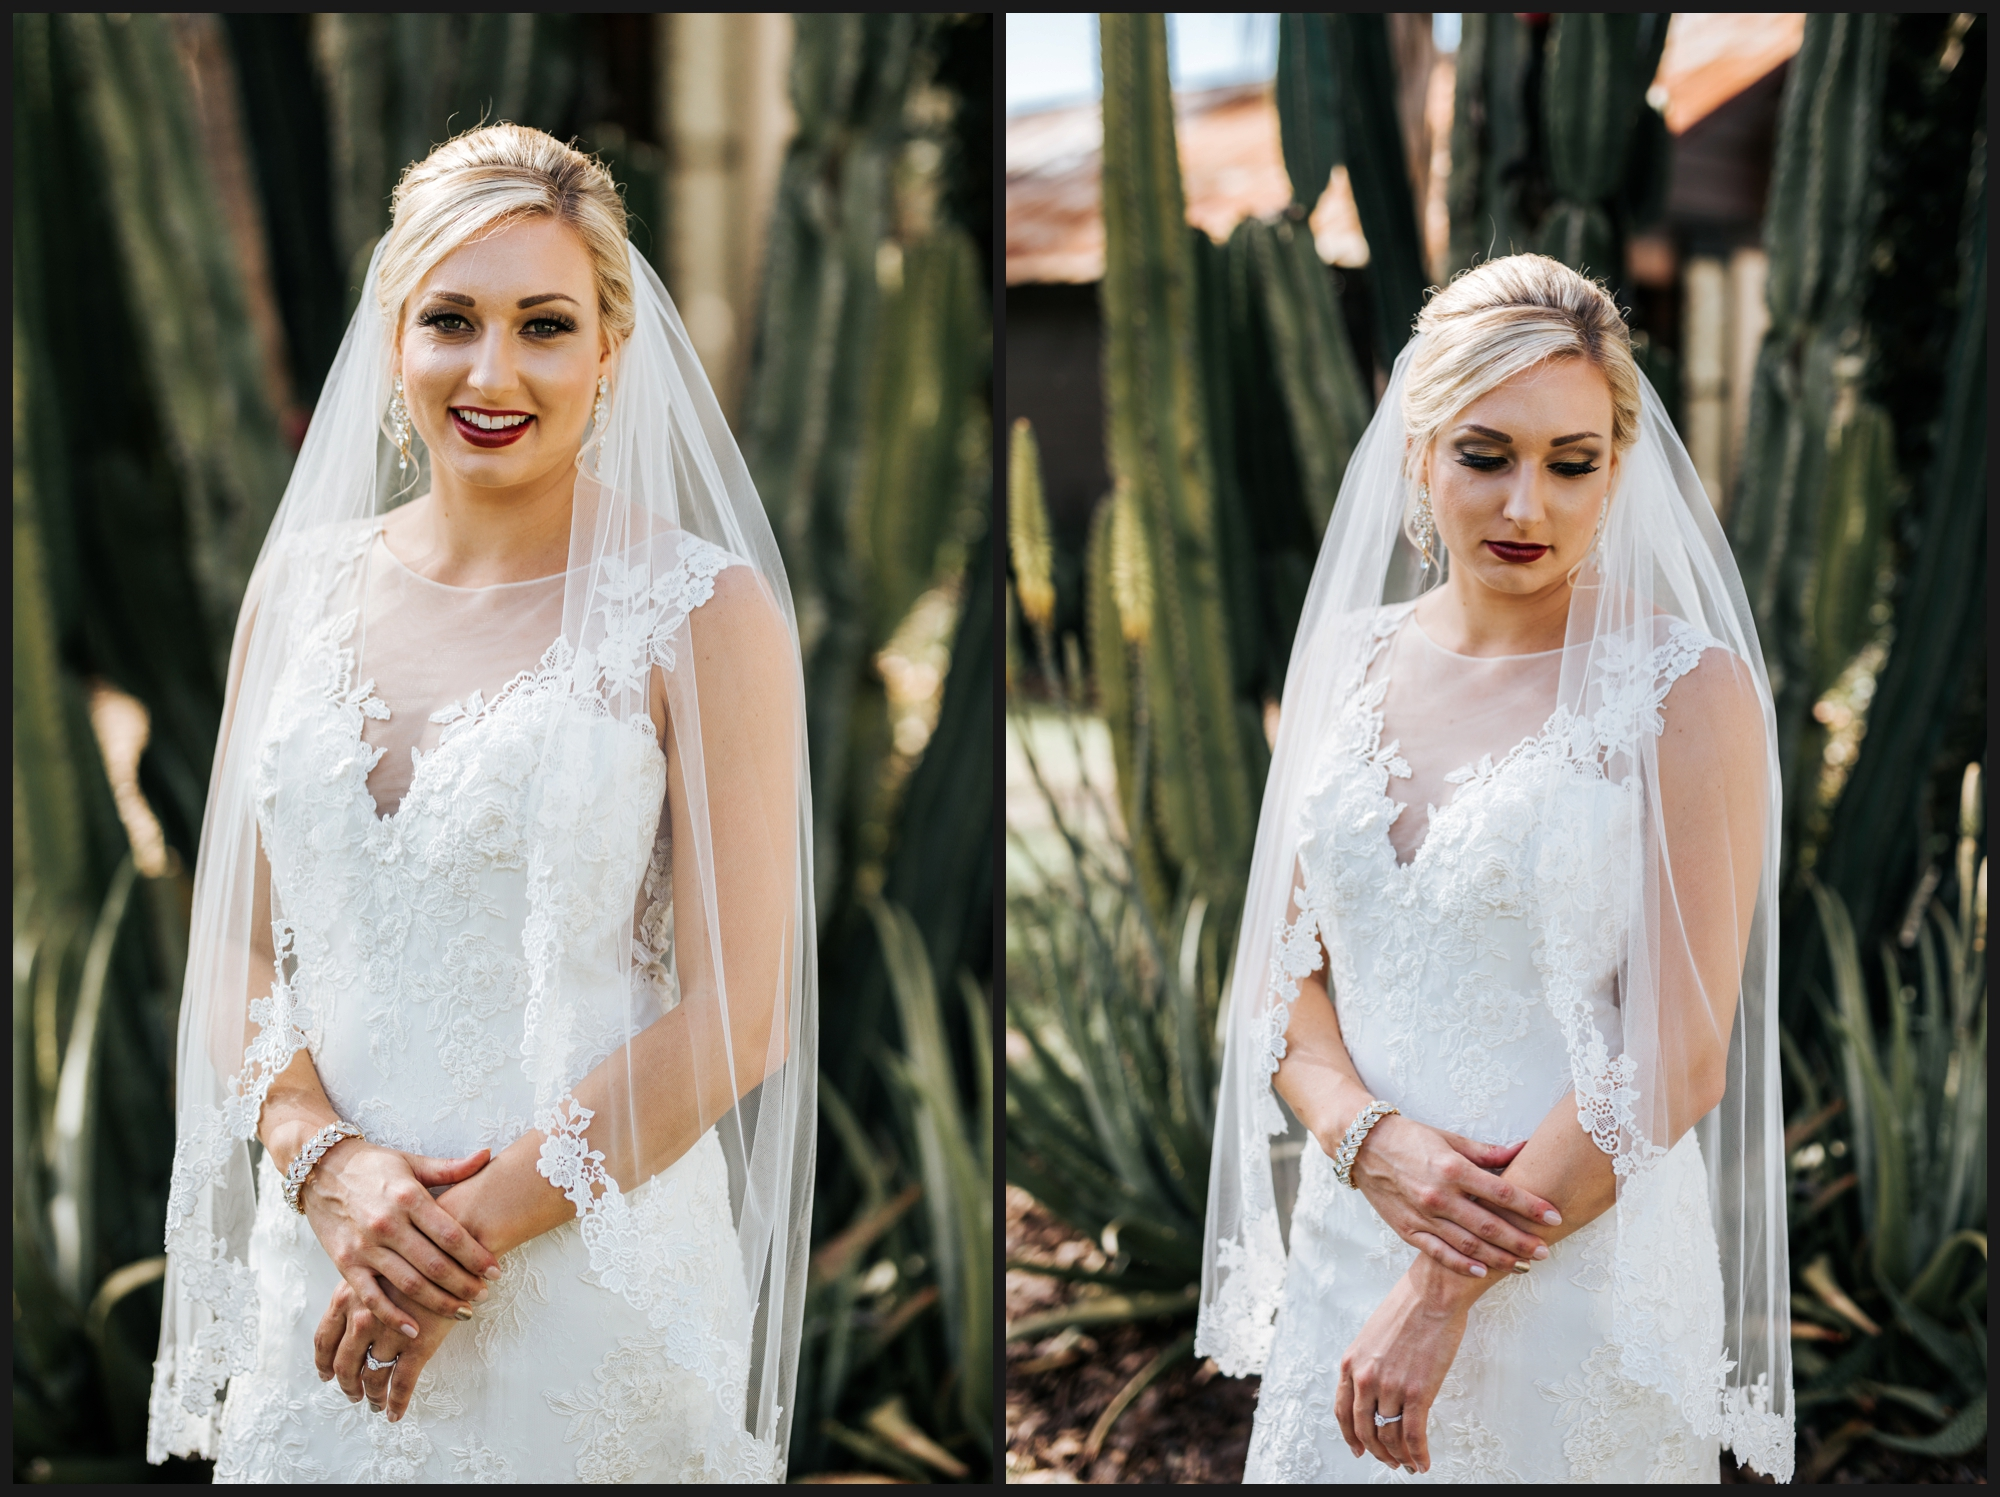 MitchandKatieOrlandoWeddingPhotographer_0005.jpg